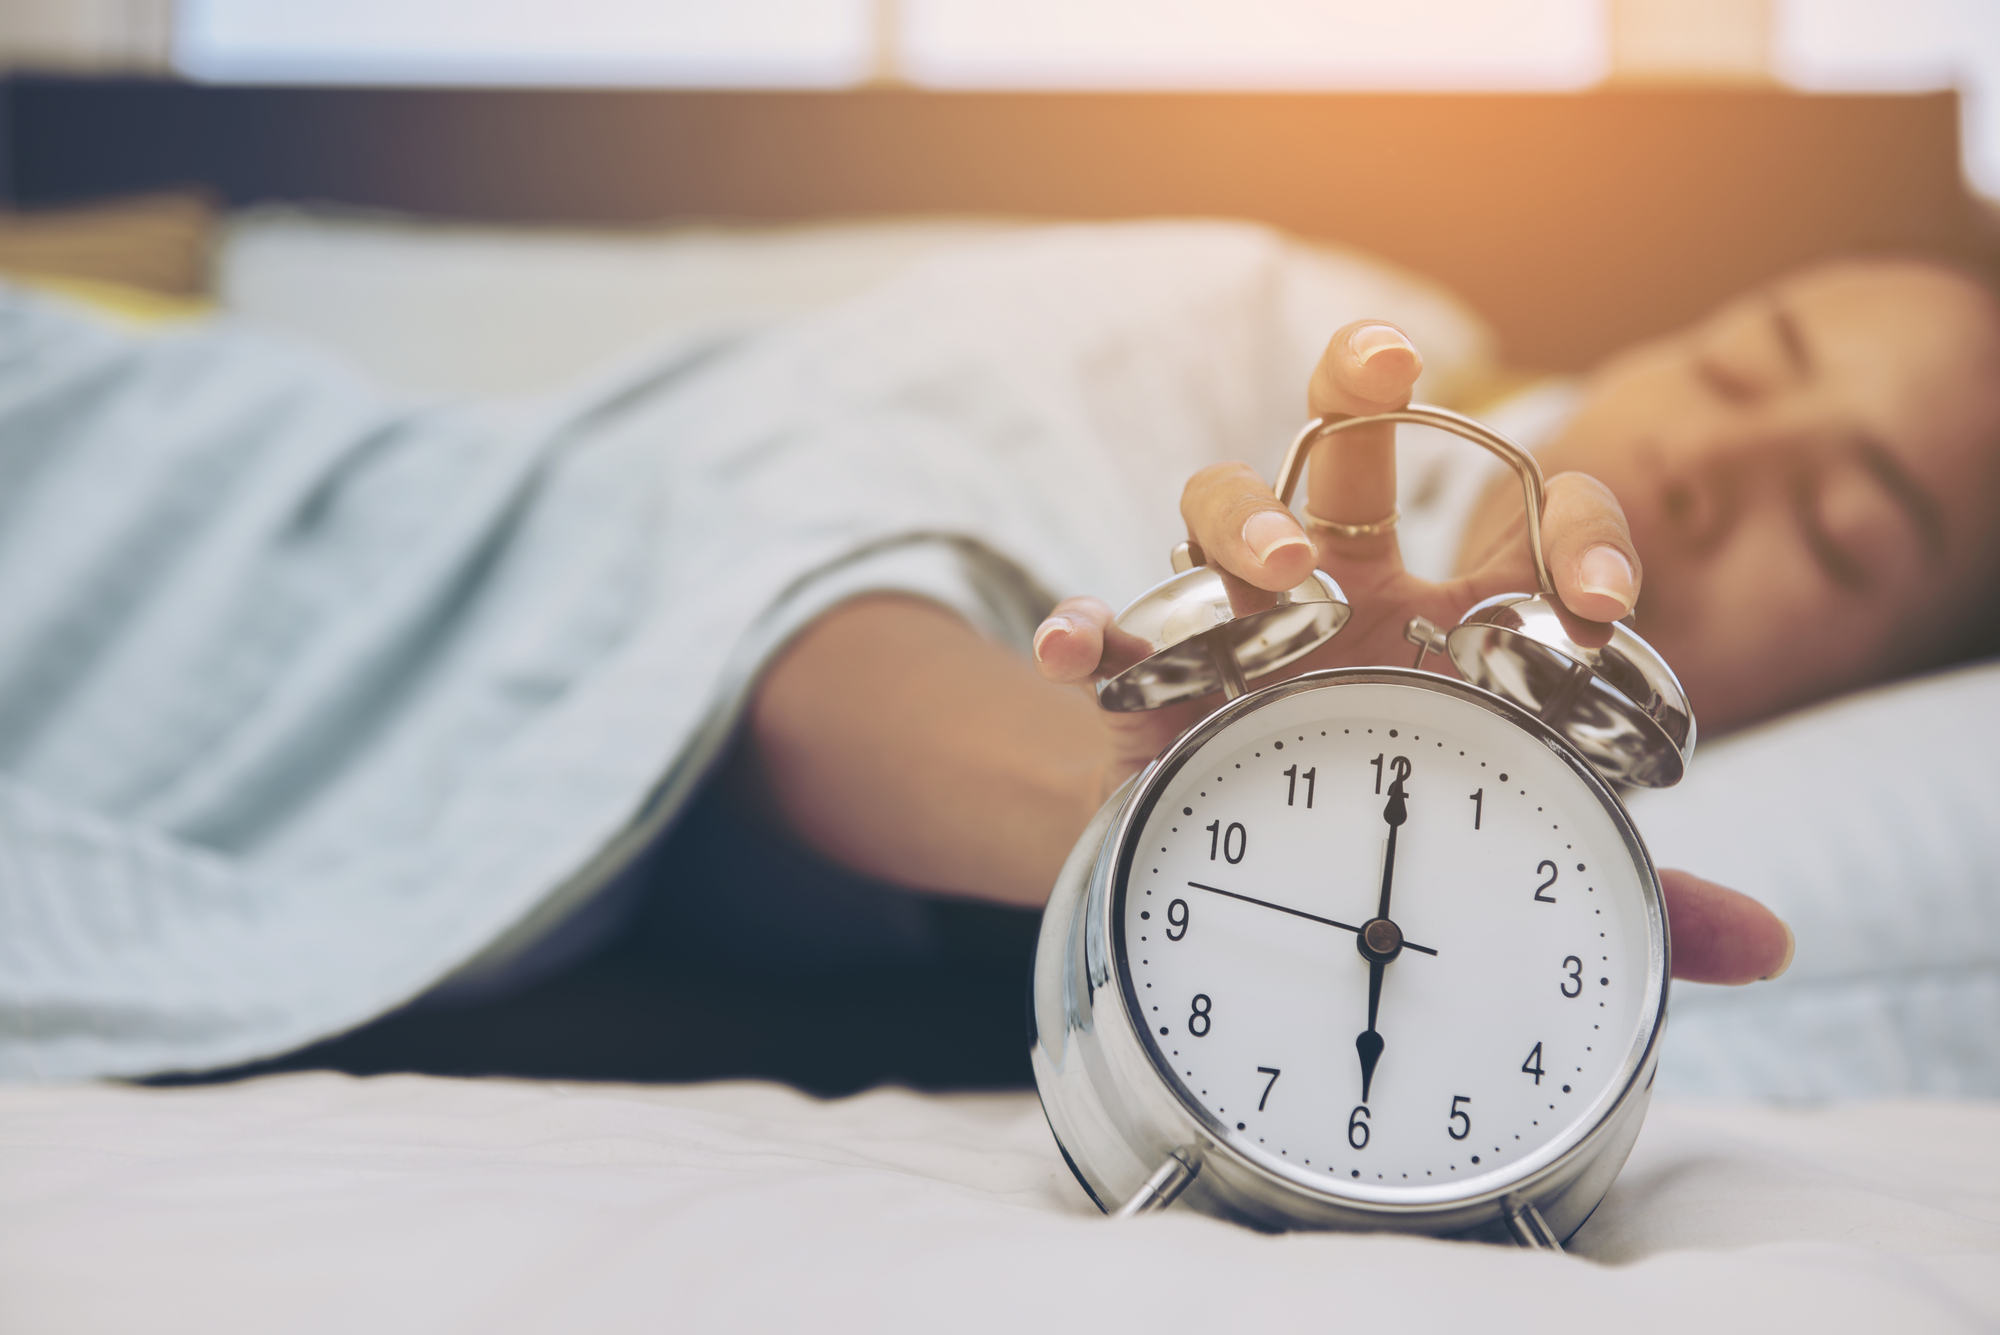 A man lies in bed a presses snooze on his alarm clock.